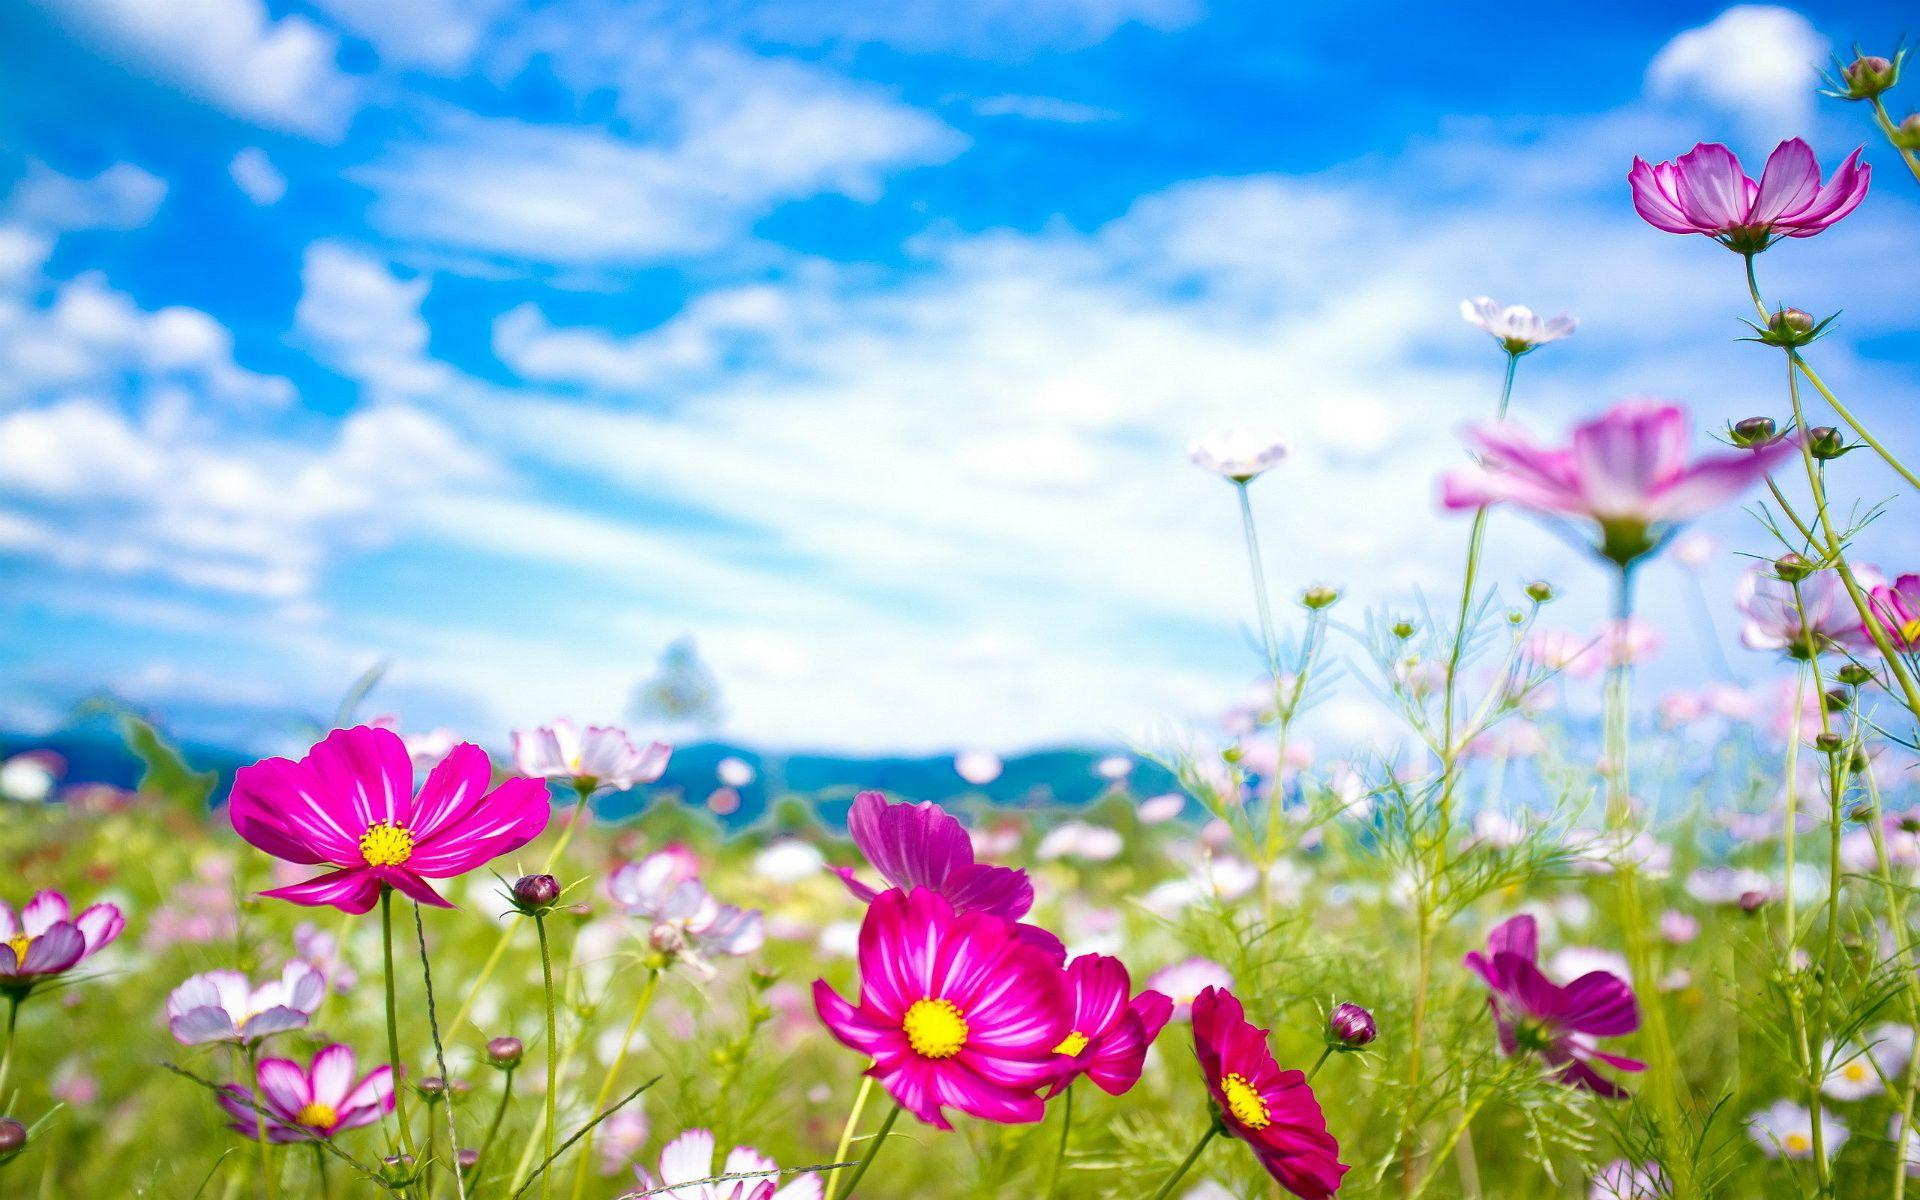 Most Beautiful Flowers Wallpapers For Desktop Wallpaper Cave